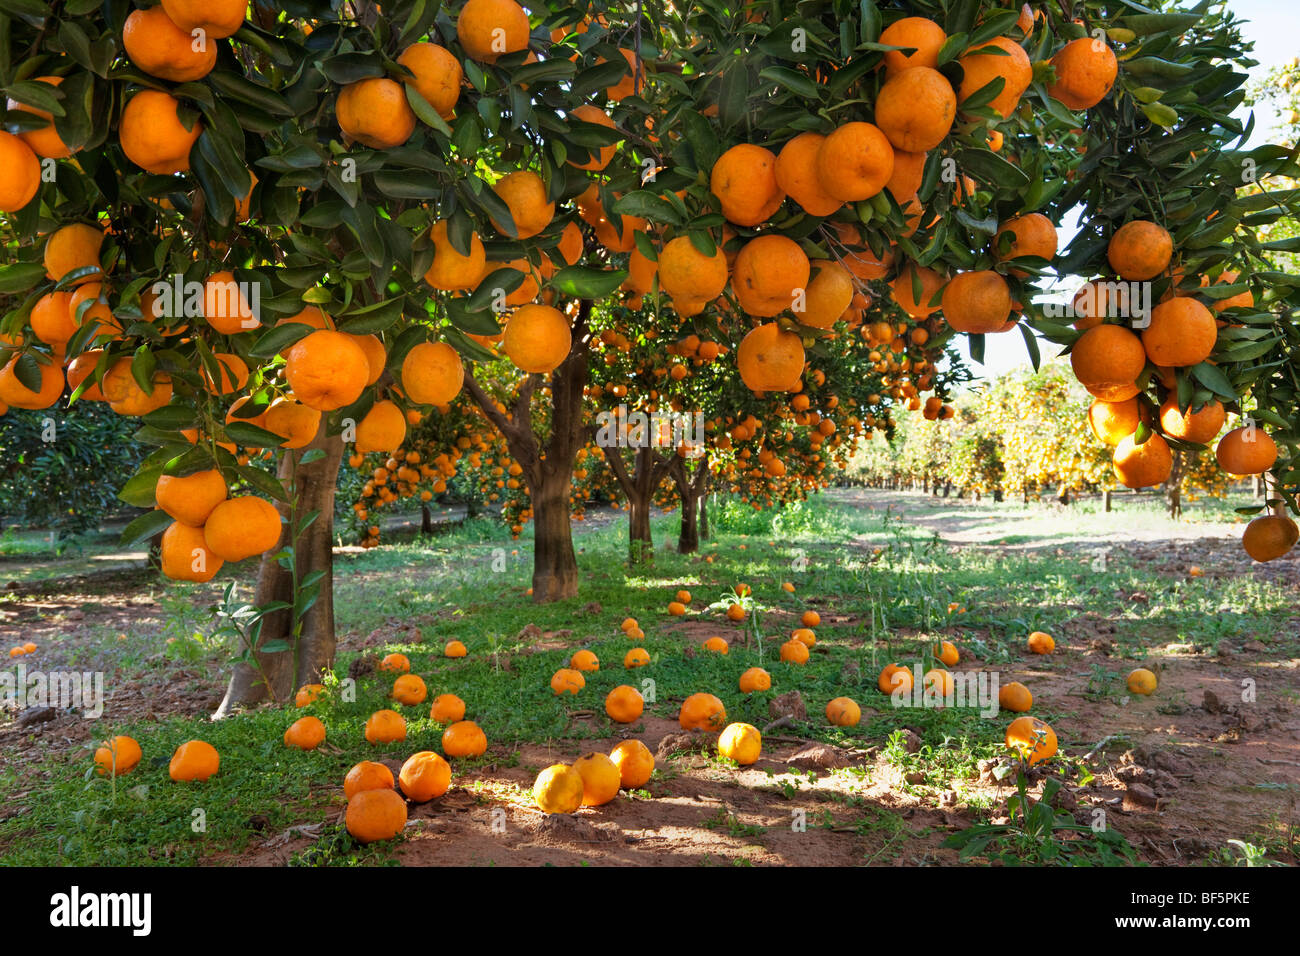 fruit trees stock photos  fruit trees stock images  alamy, Beautiful flower